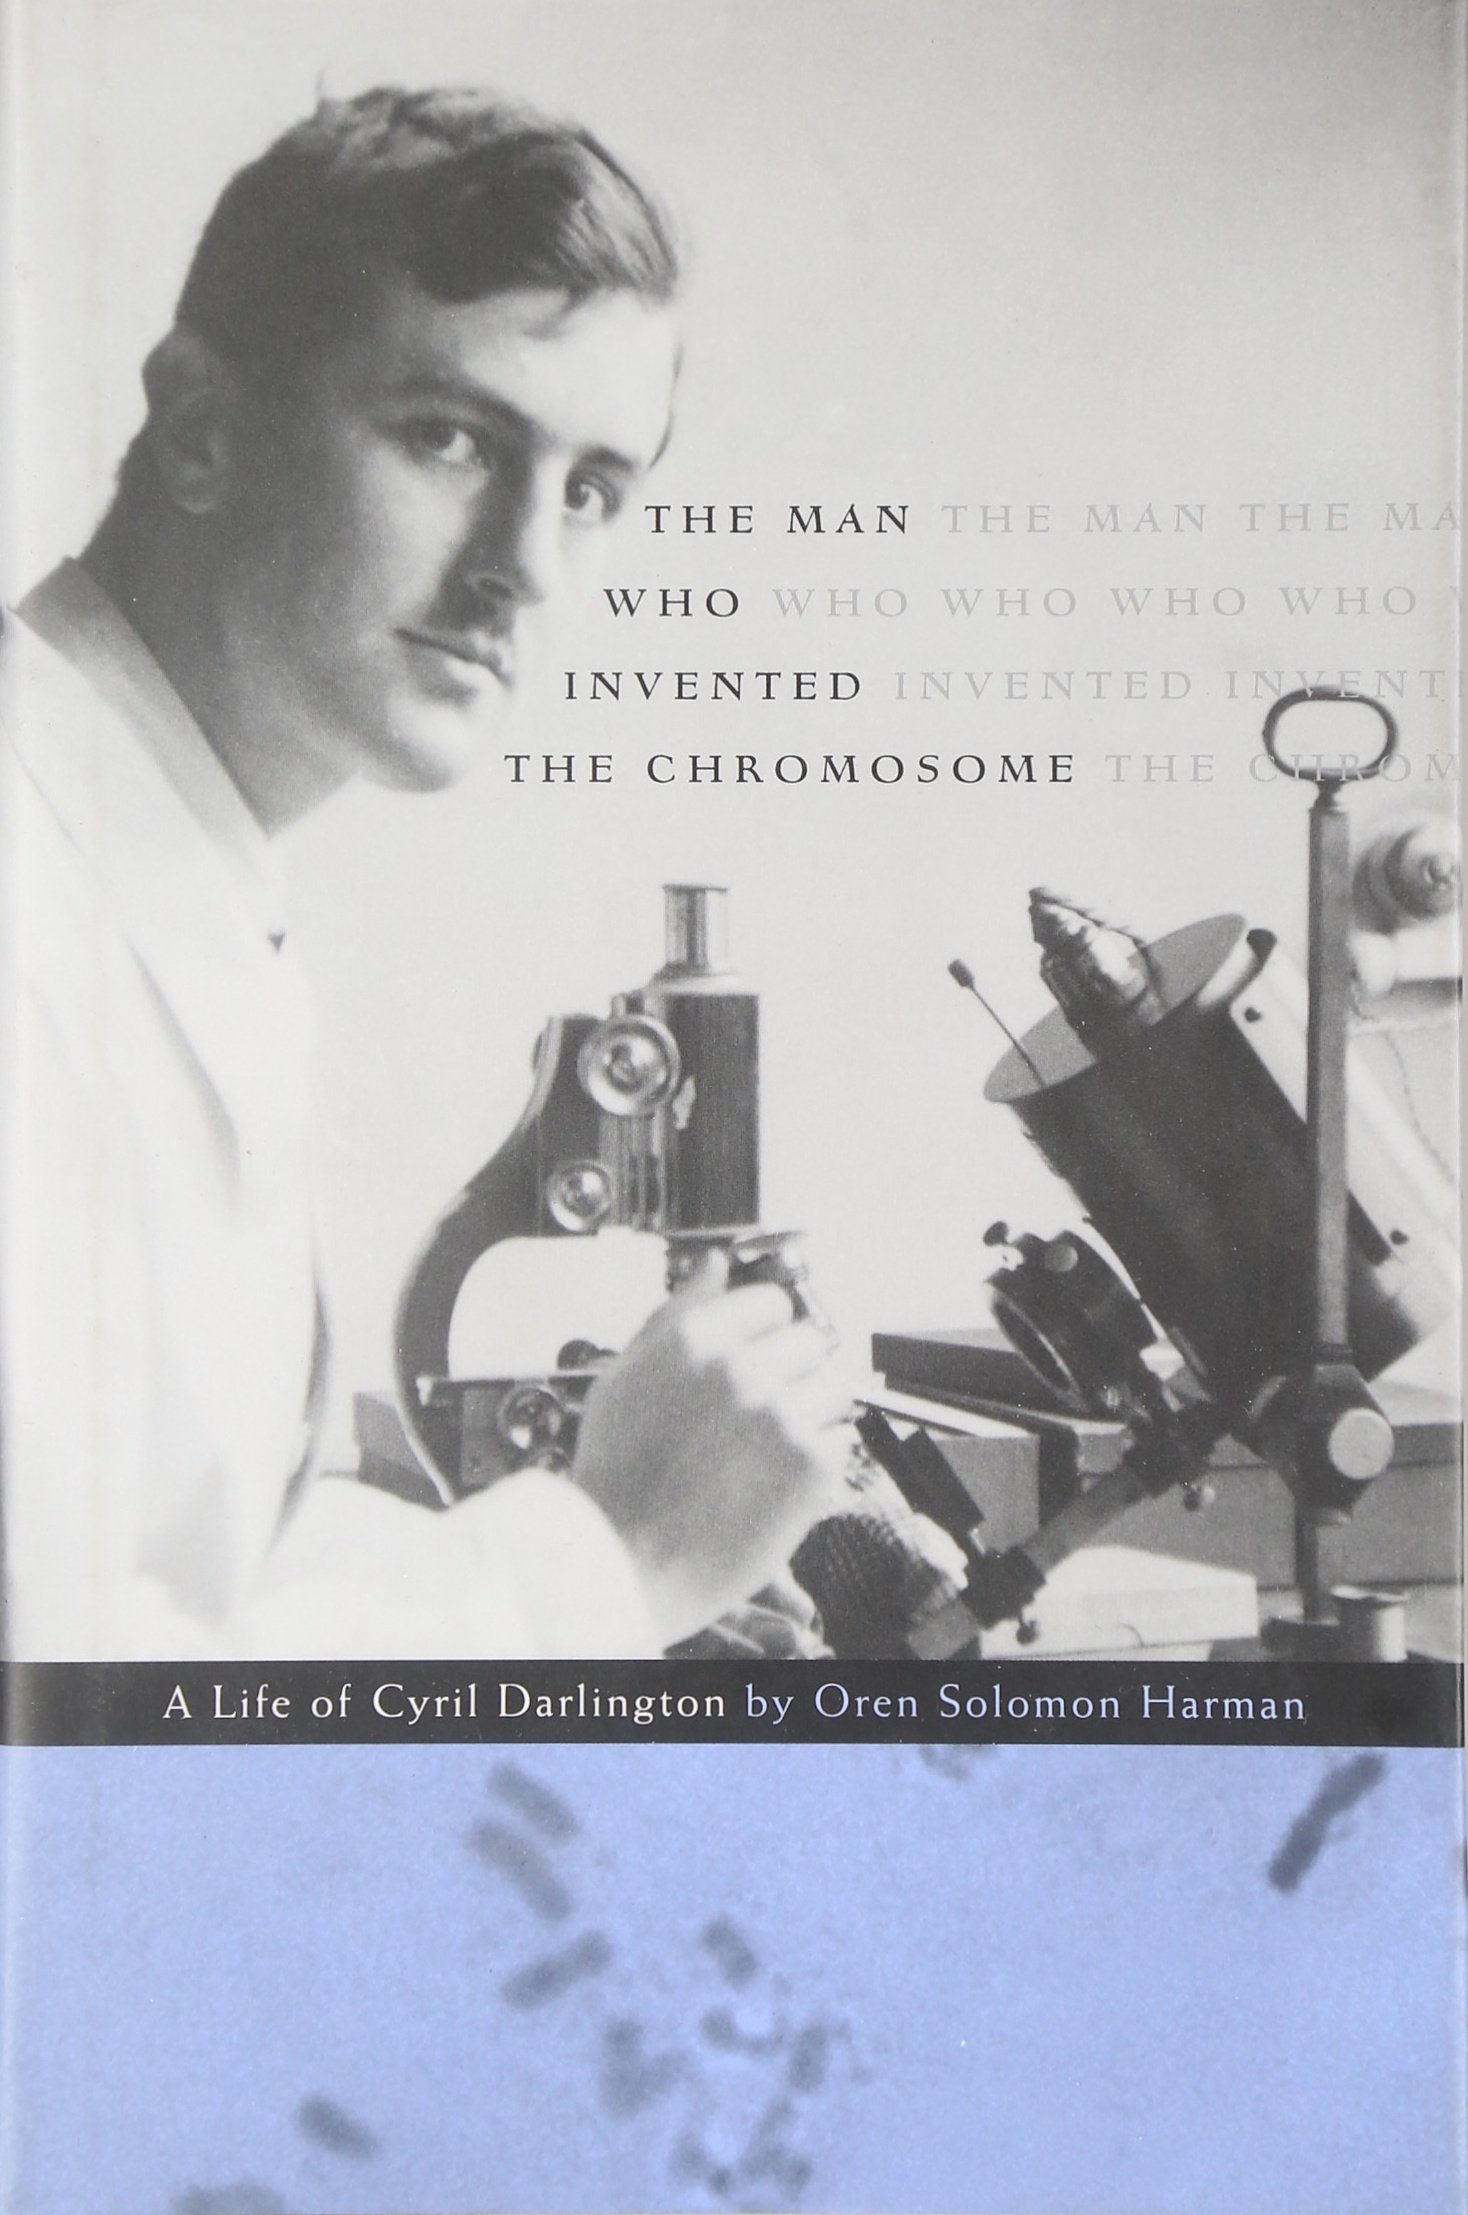 The man who invented the chromosome a life of cyril darlington the man who invented the chromosome a life of cyril darlington oren solomon harman 9780674013339 amazon books fandeluxe Image collections